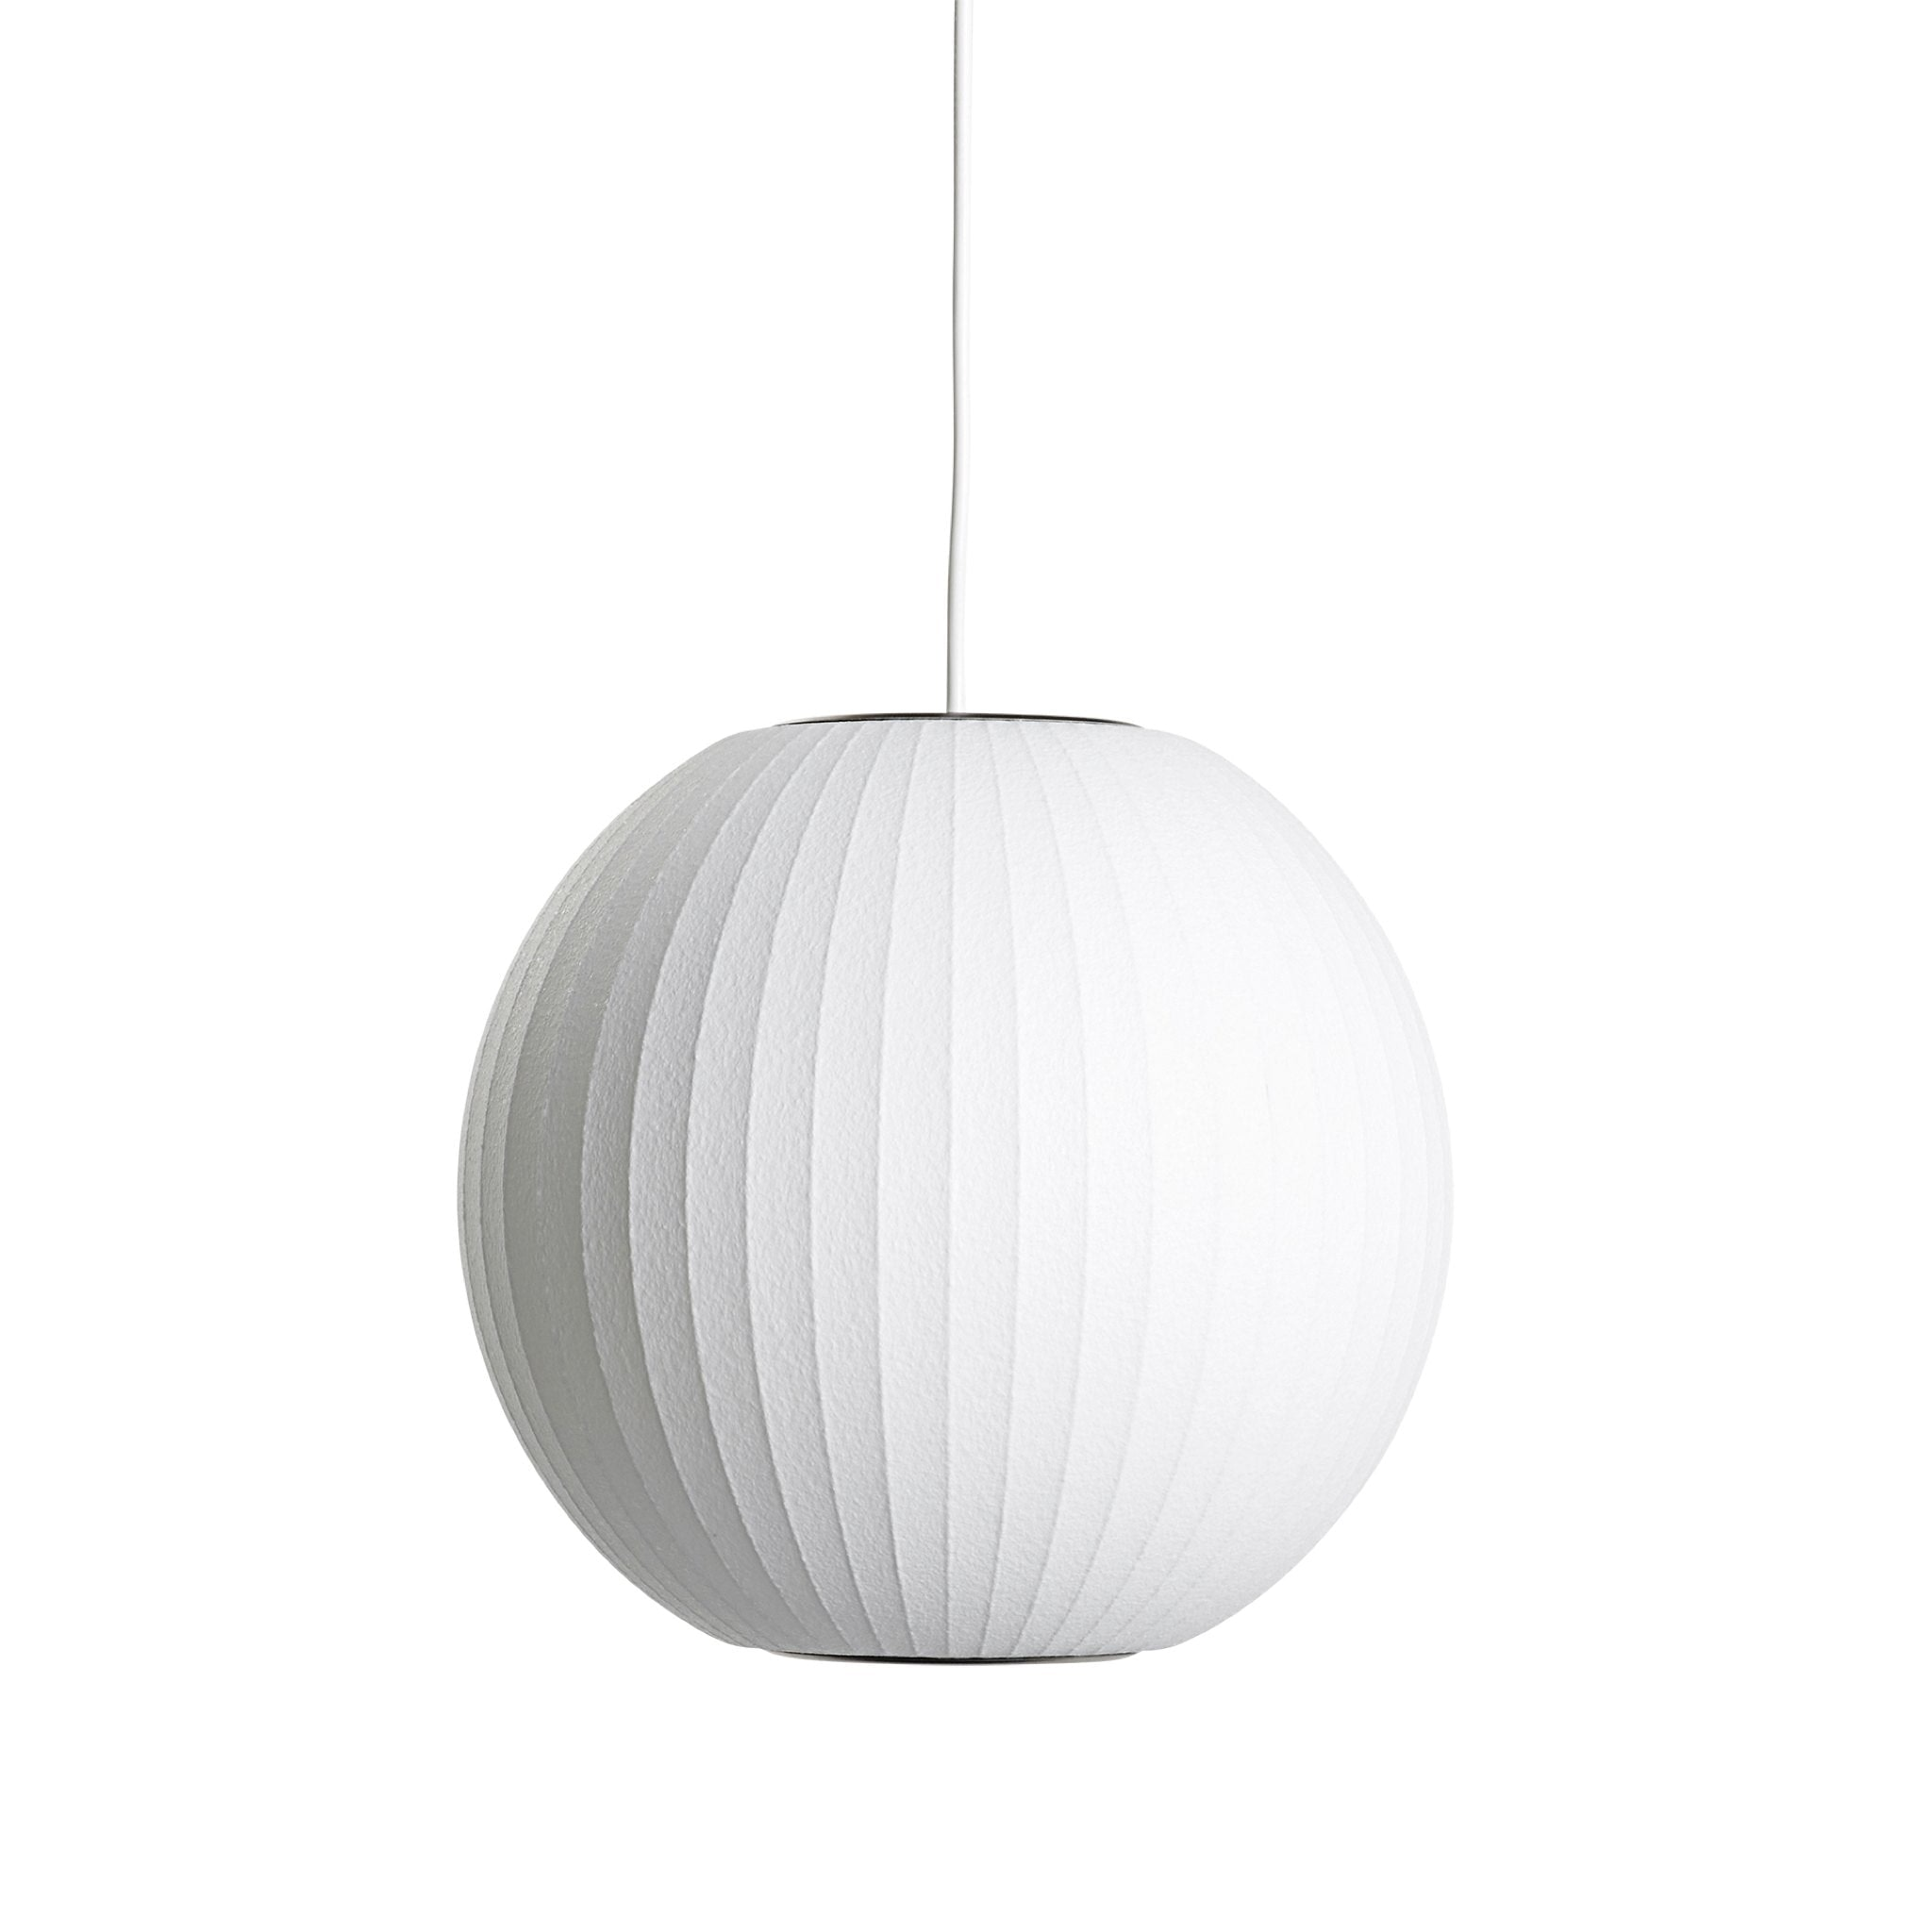 Ball Bubble Light by Herman Miller